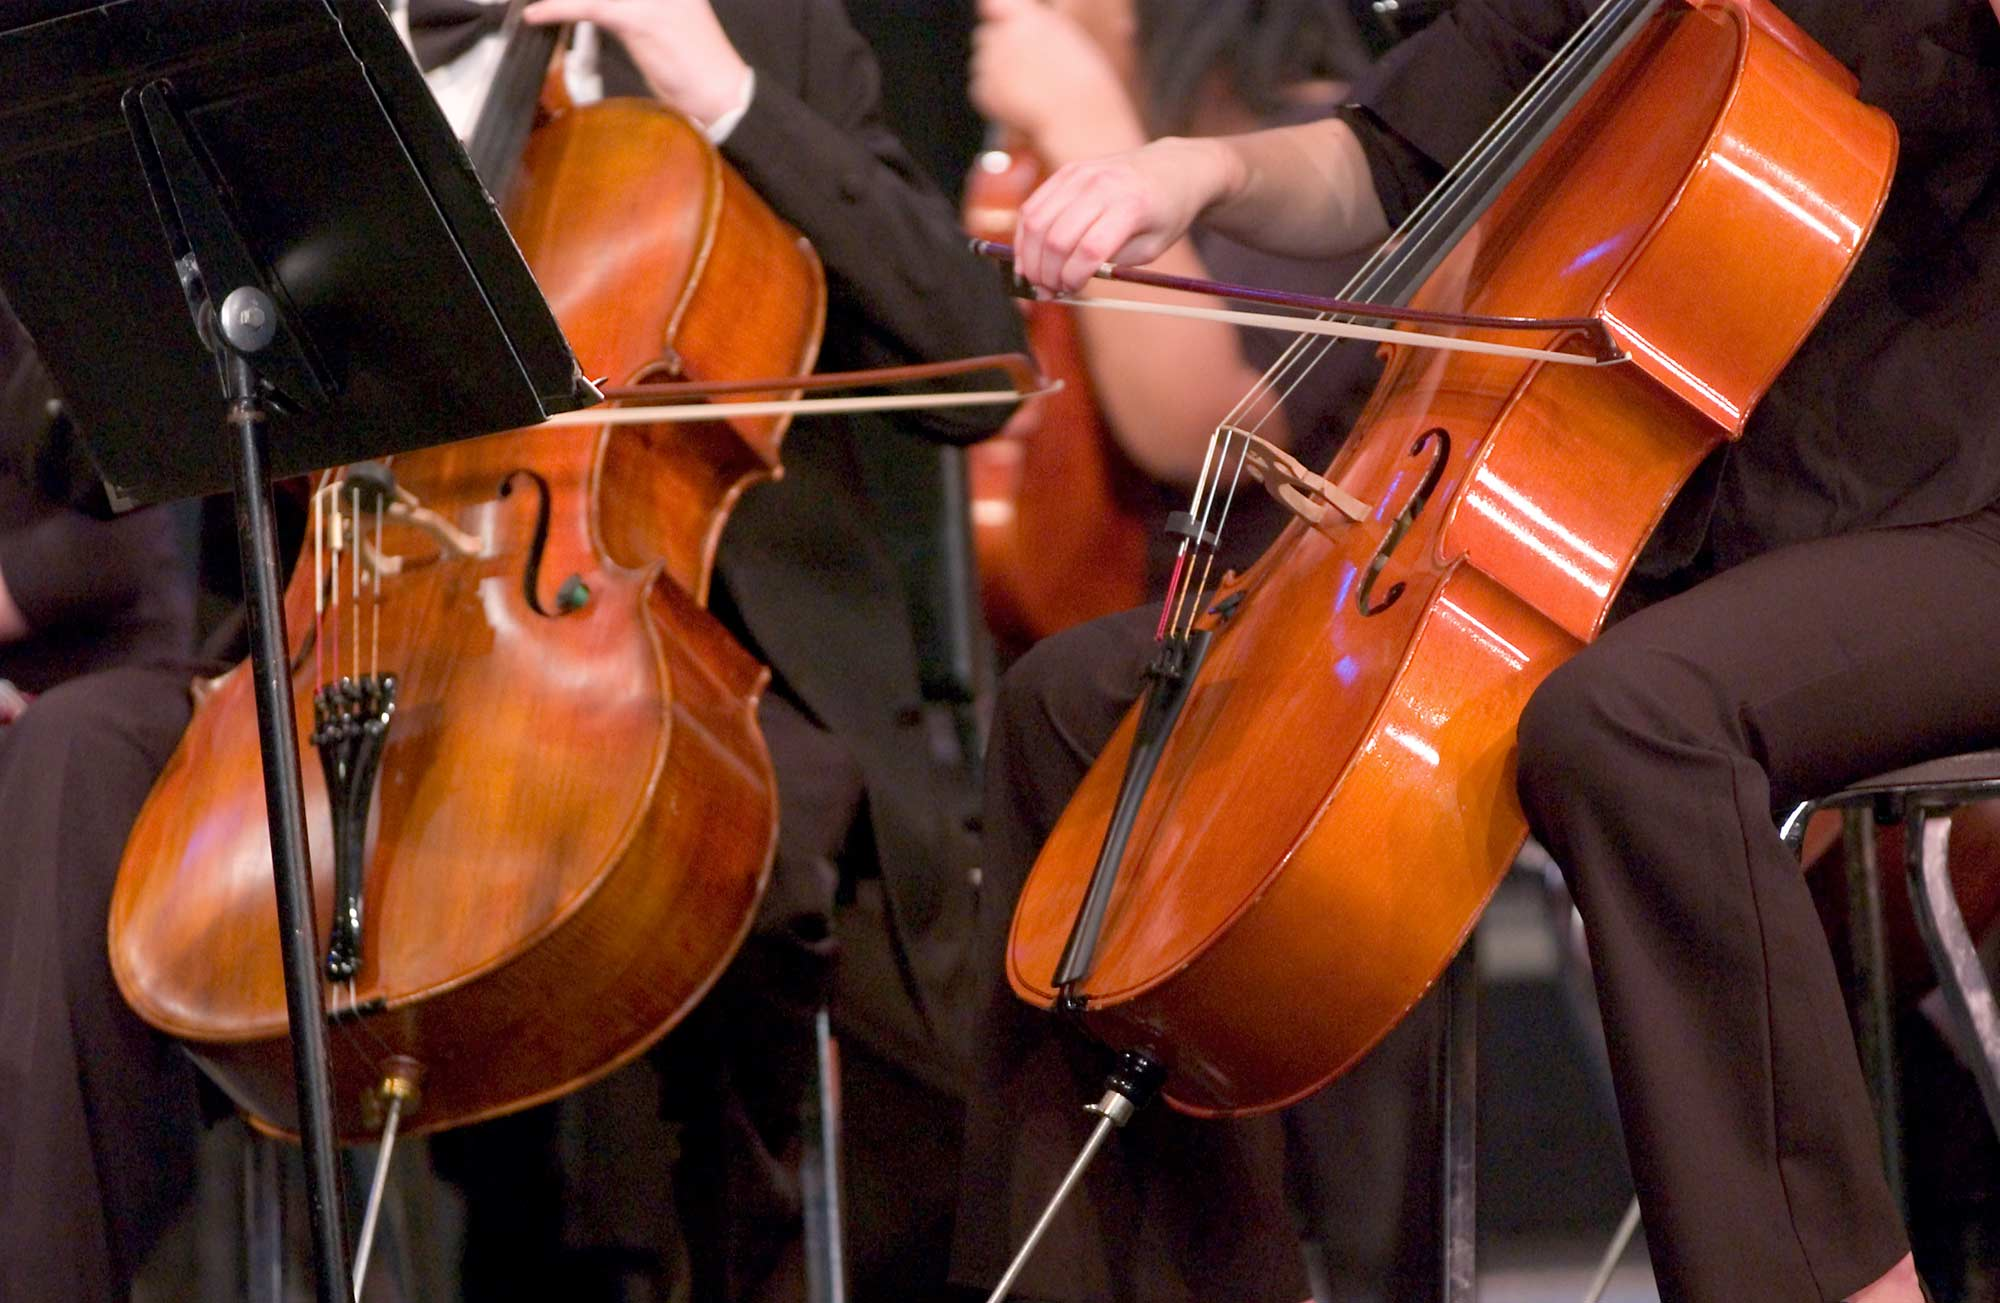 What I Learned From A Street Symphony